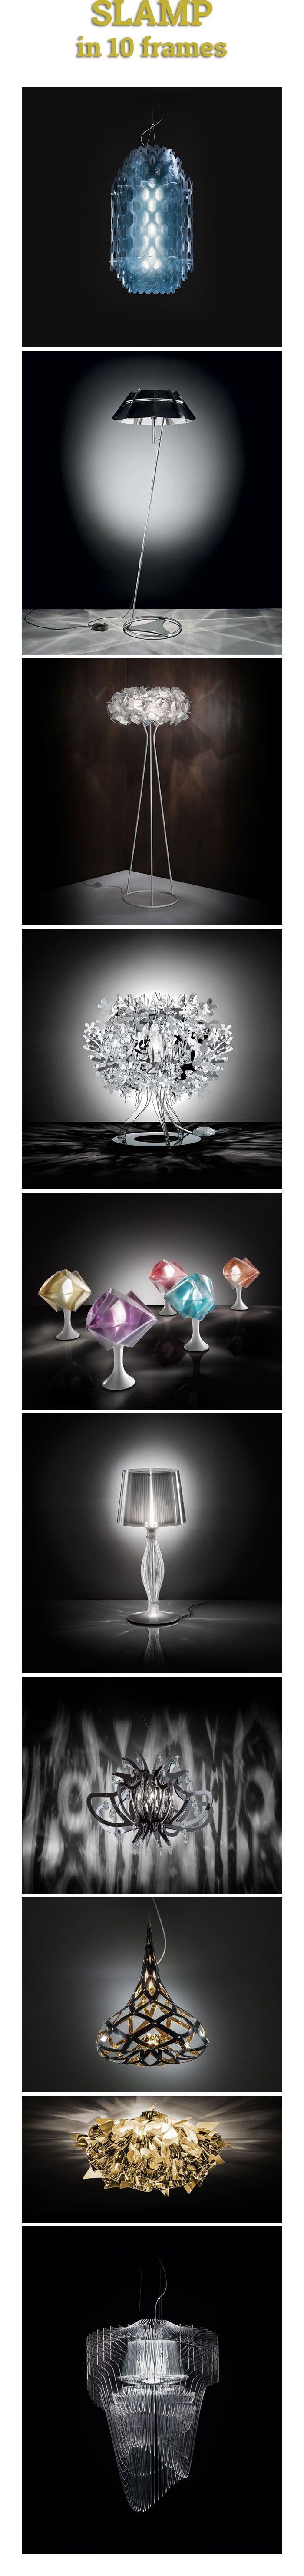 Slamp is a young firm, renowned in the field of lighting design for manufacturing extremely futuristic and dramatic pieces. | @slampSpa |